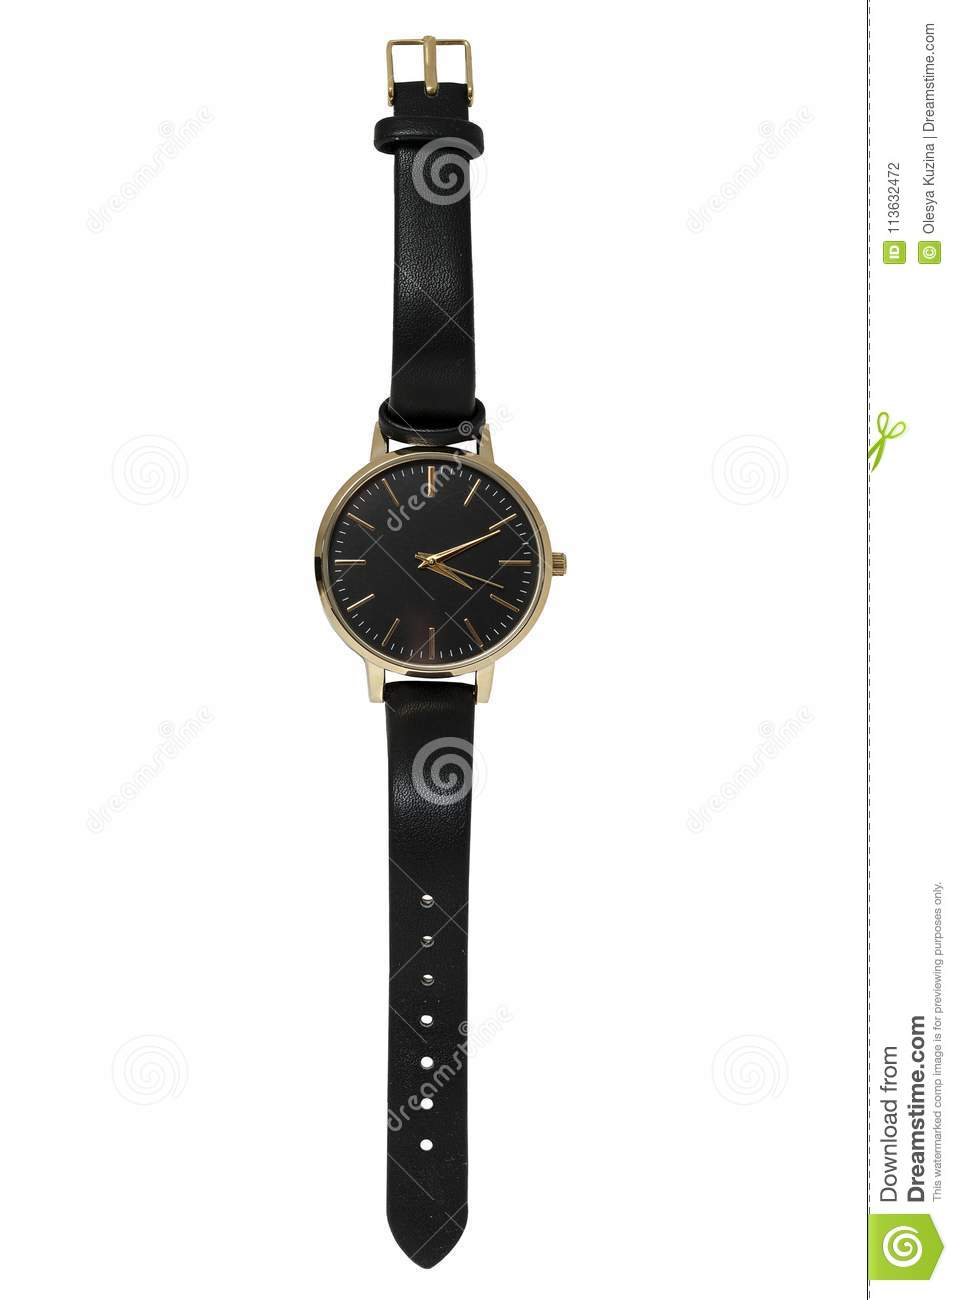 Female wrist watch in gold case and black leather strap